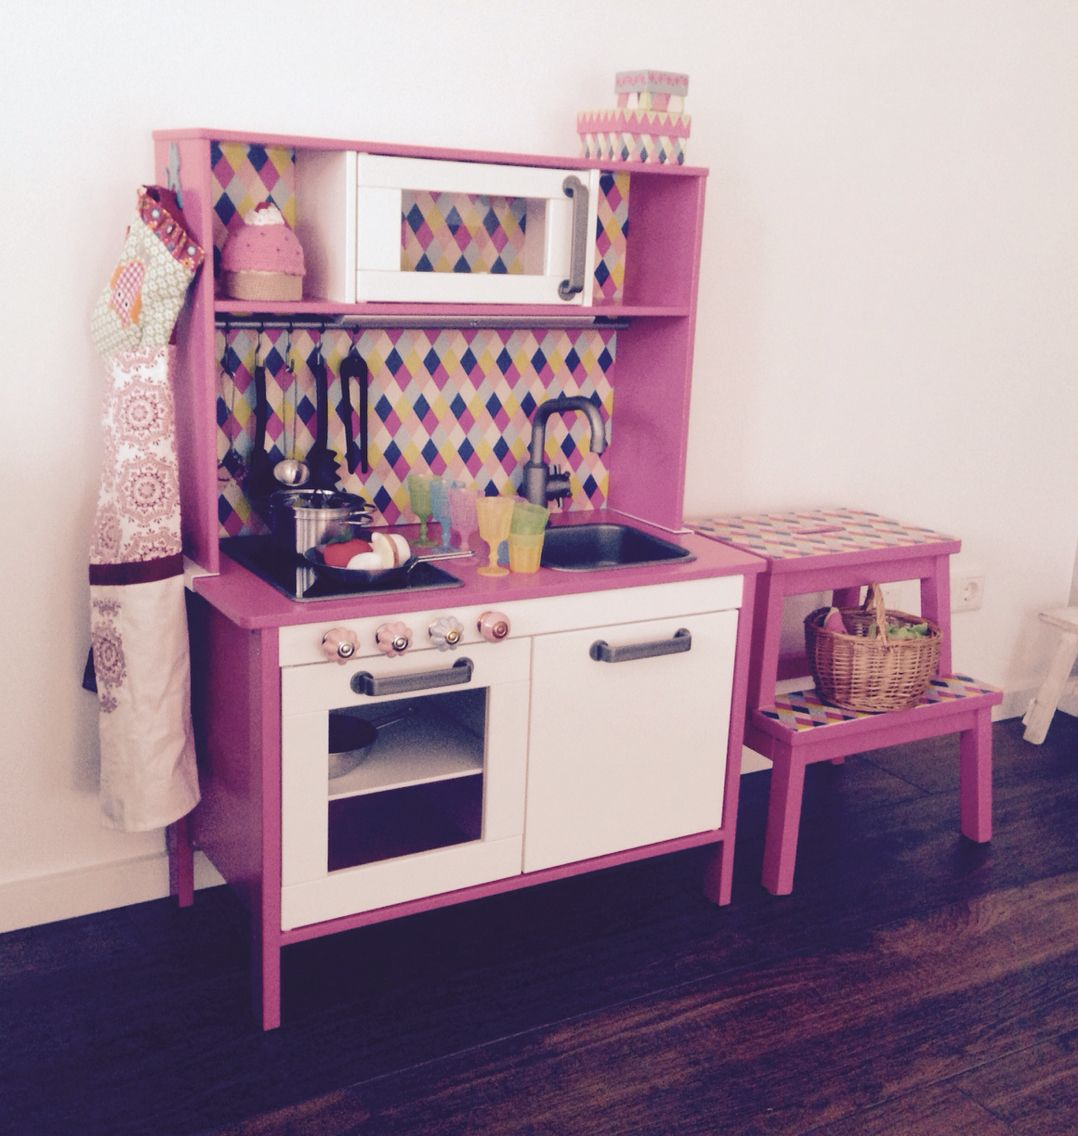 Ikea Küche Heck Ikea Kitchen Duktig Hack Julia Pinterest Kinderküche